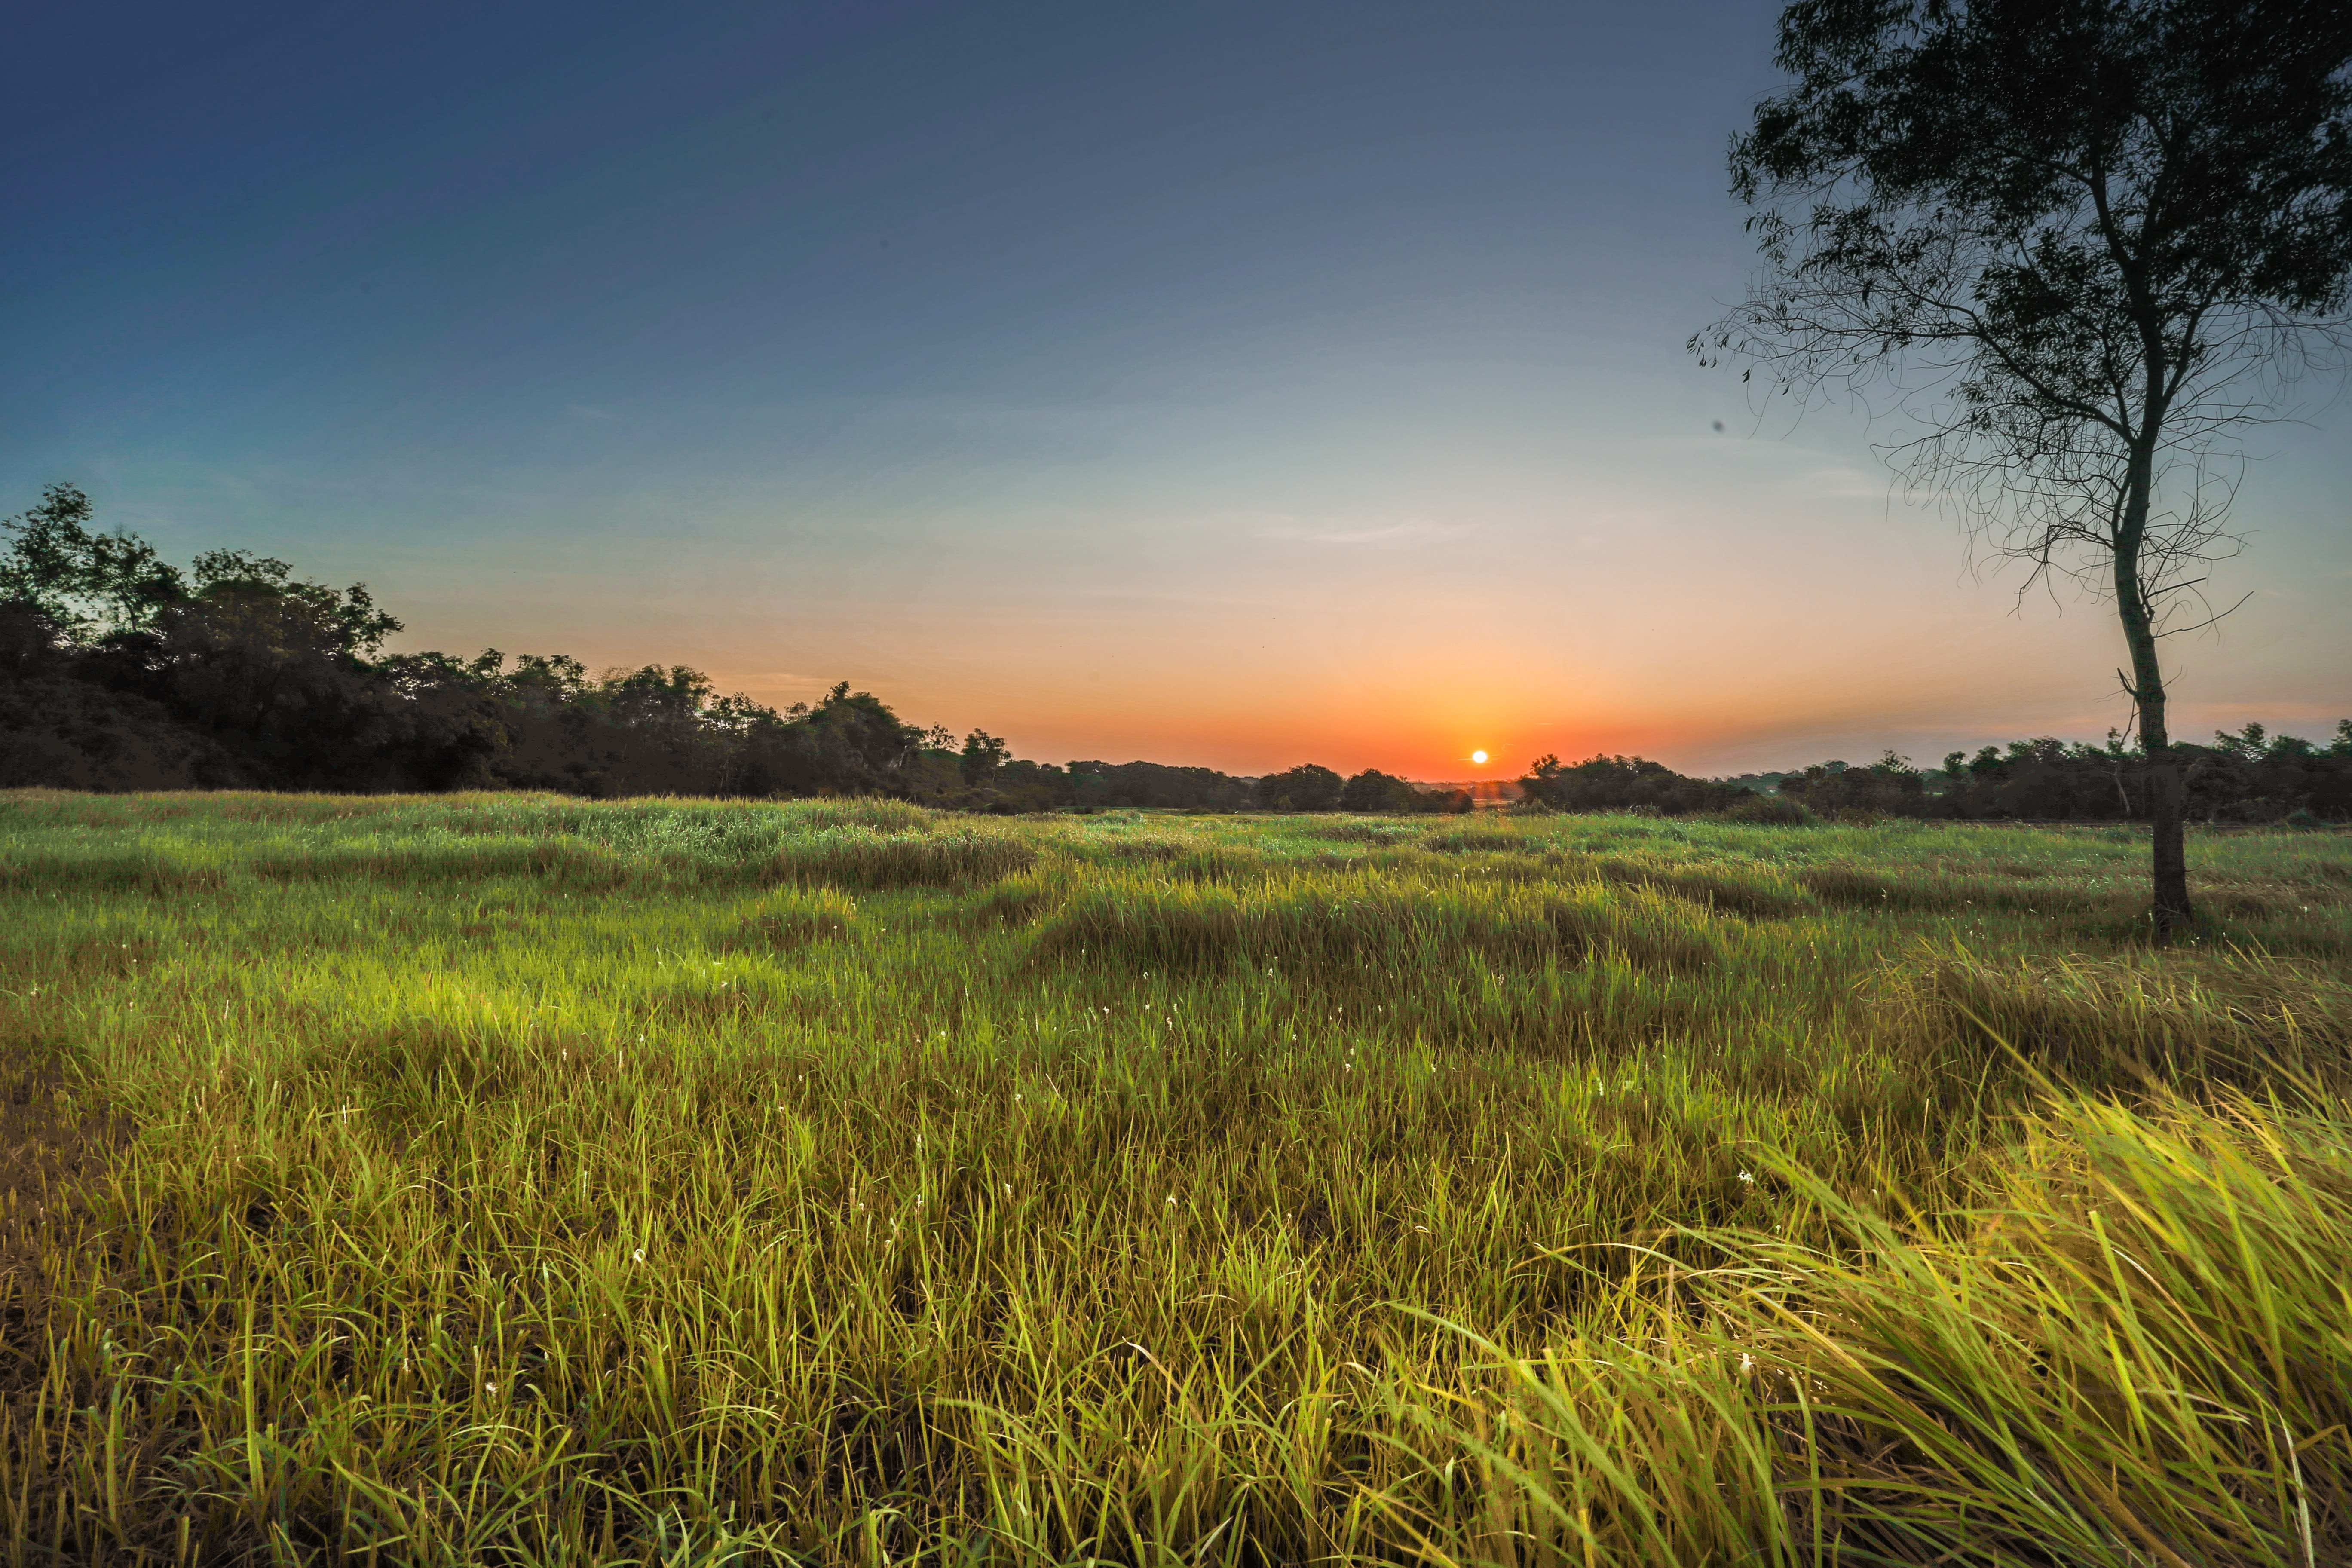 Landscape Photography Of Green Grass Field During Golden Hour